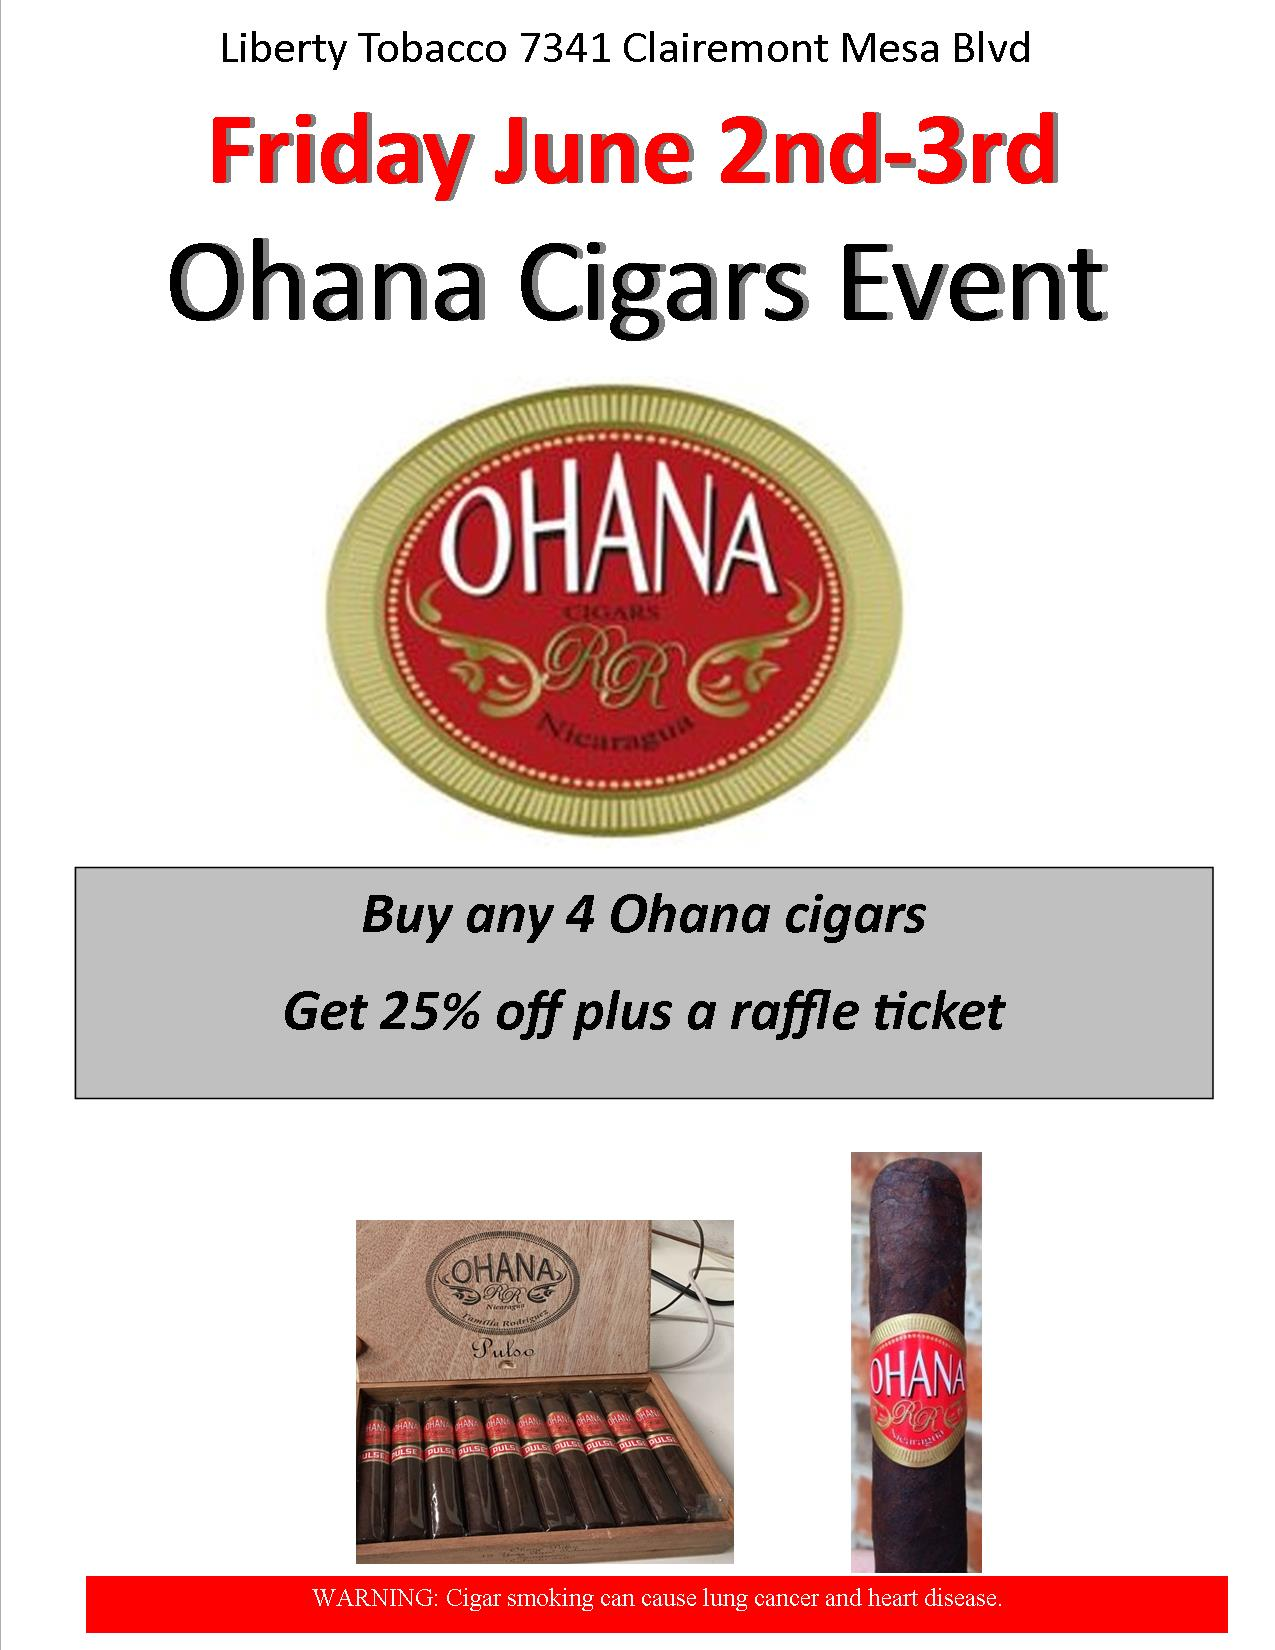 Ohana Cigar Event at Liberty Tobacco